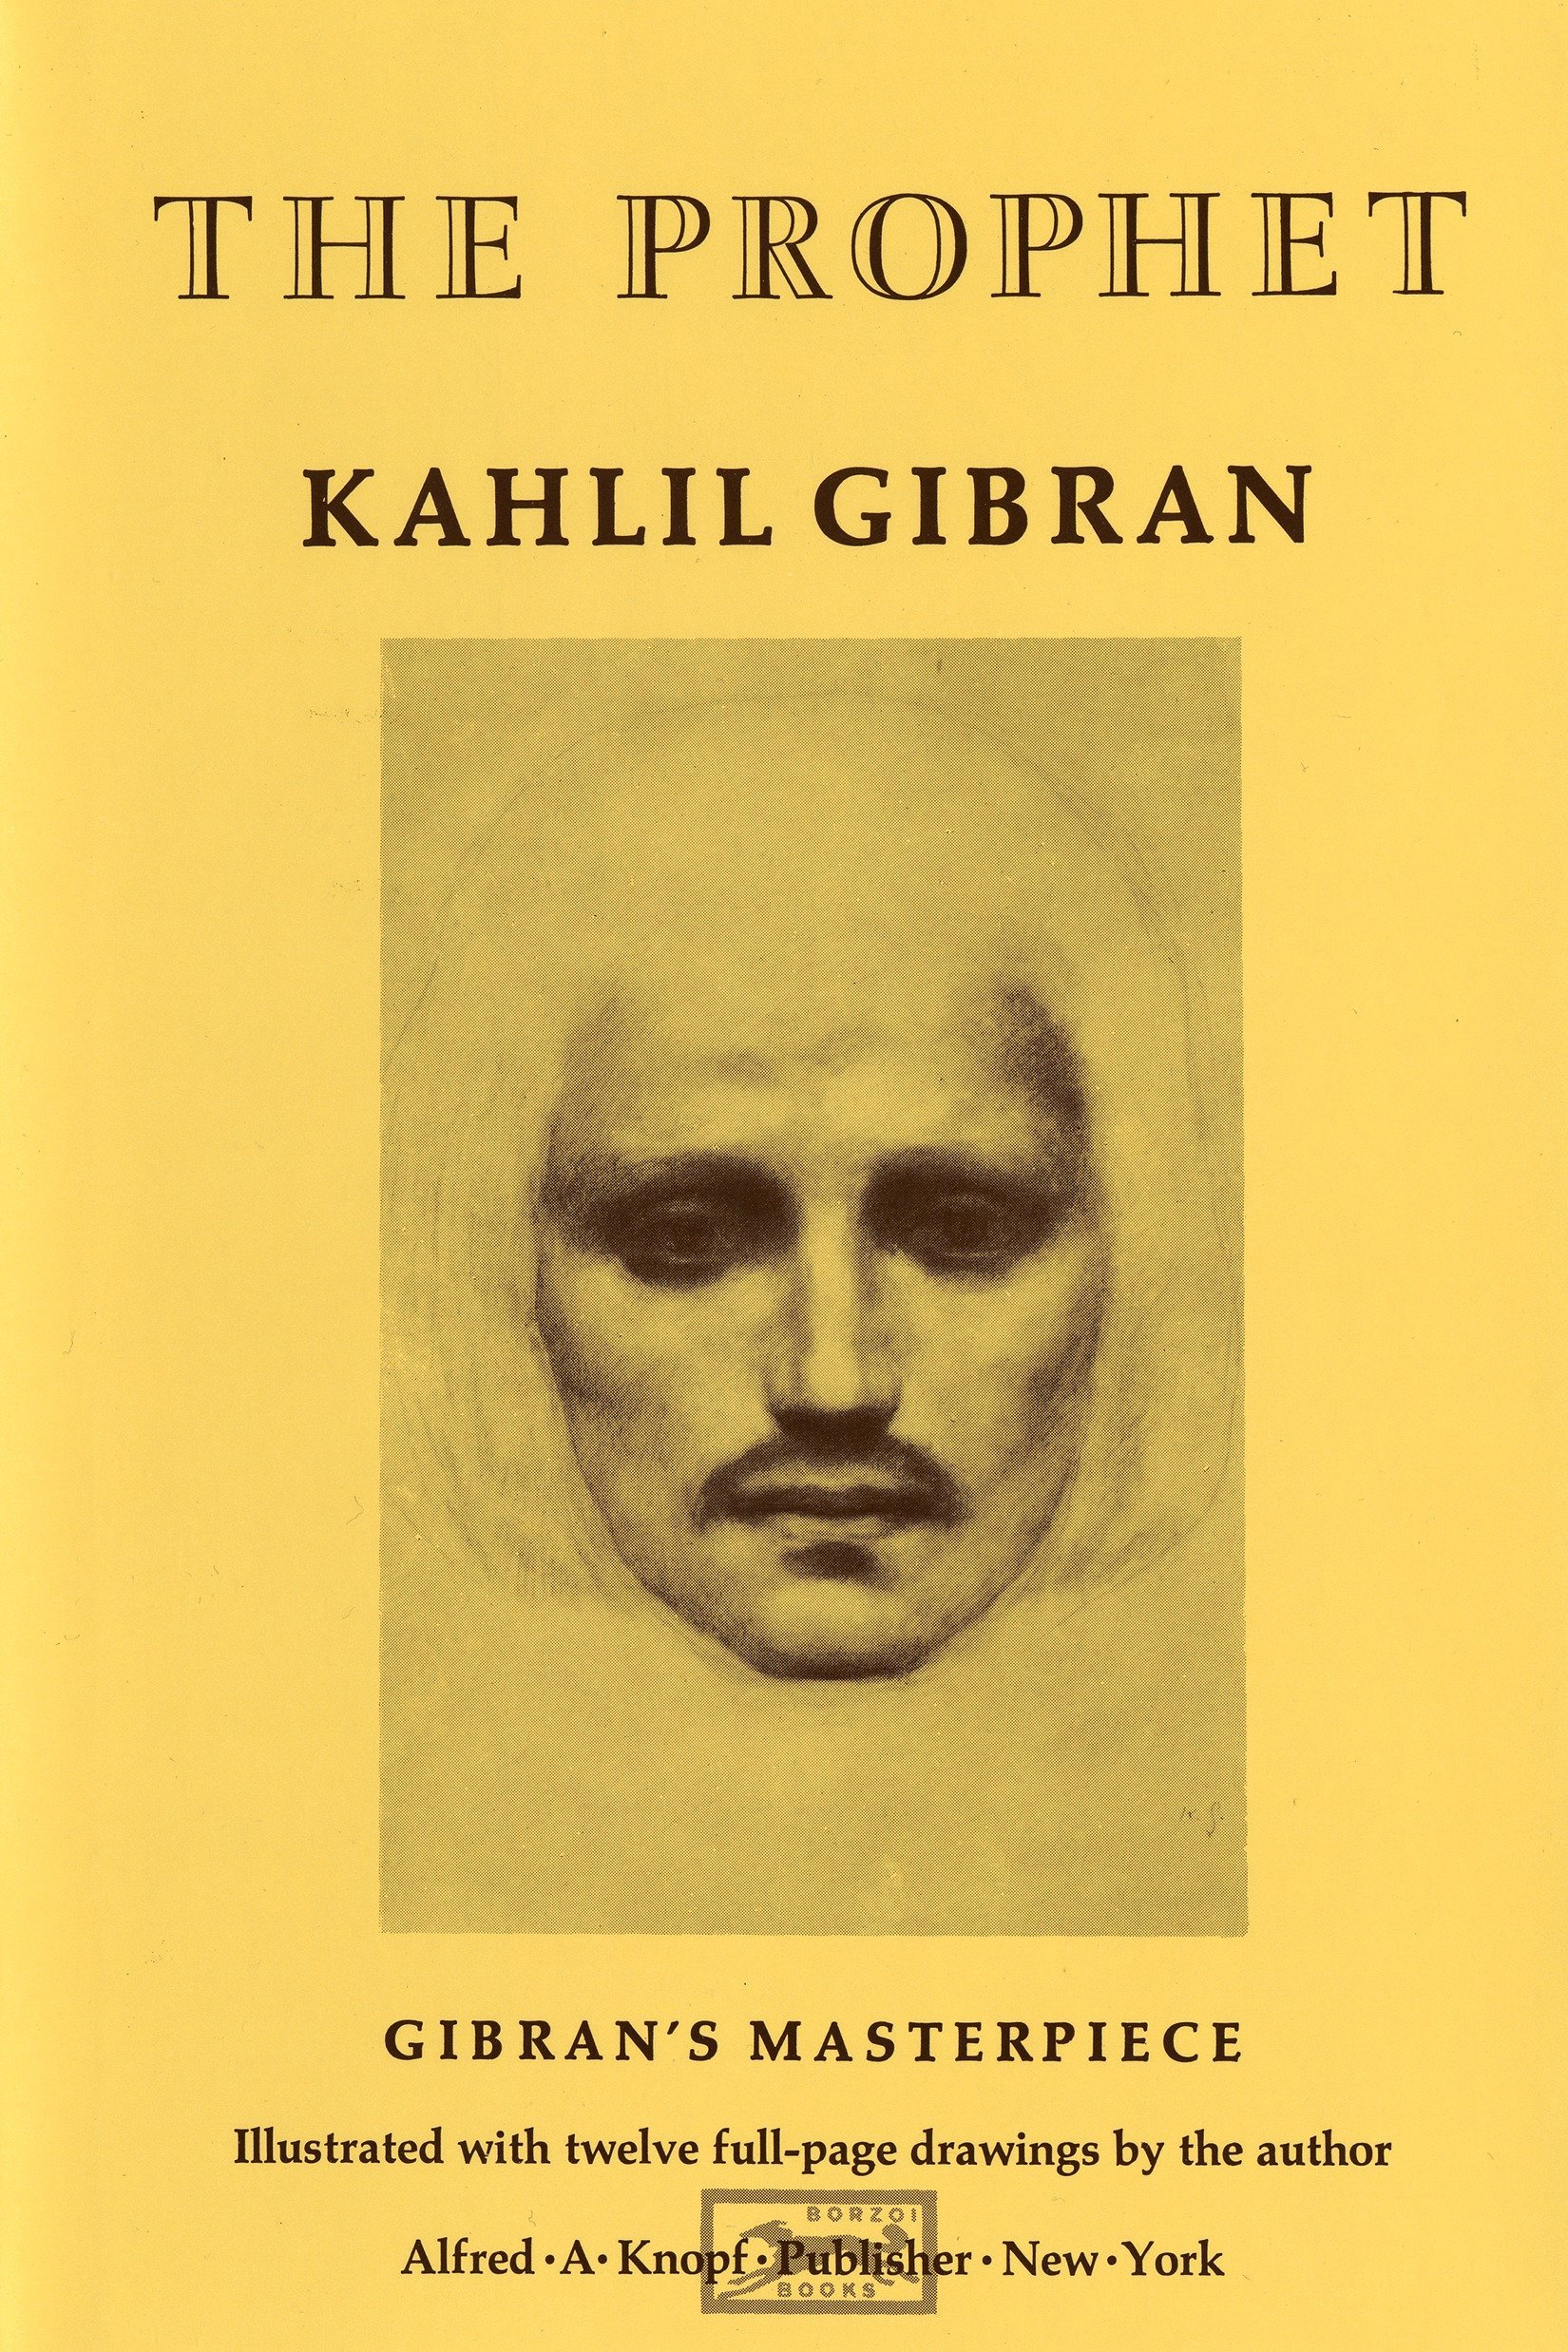 Image result for The Prophet by Kahlil Gibran.